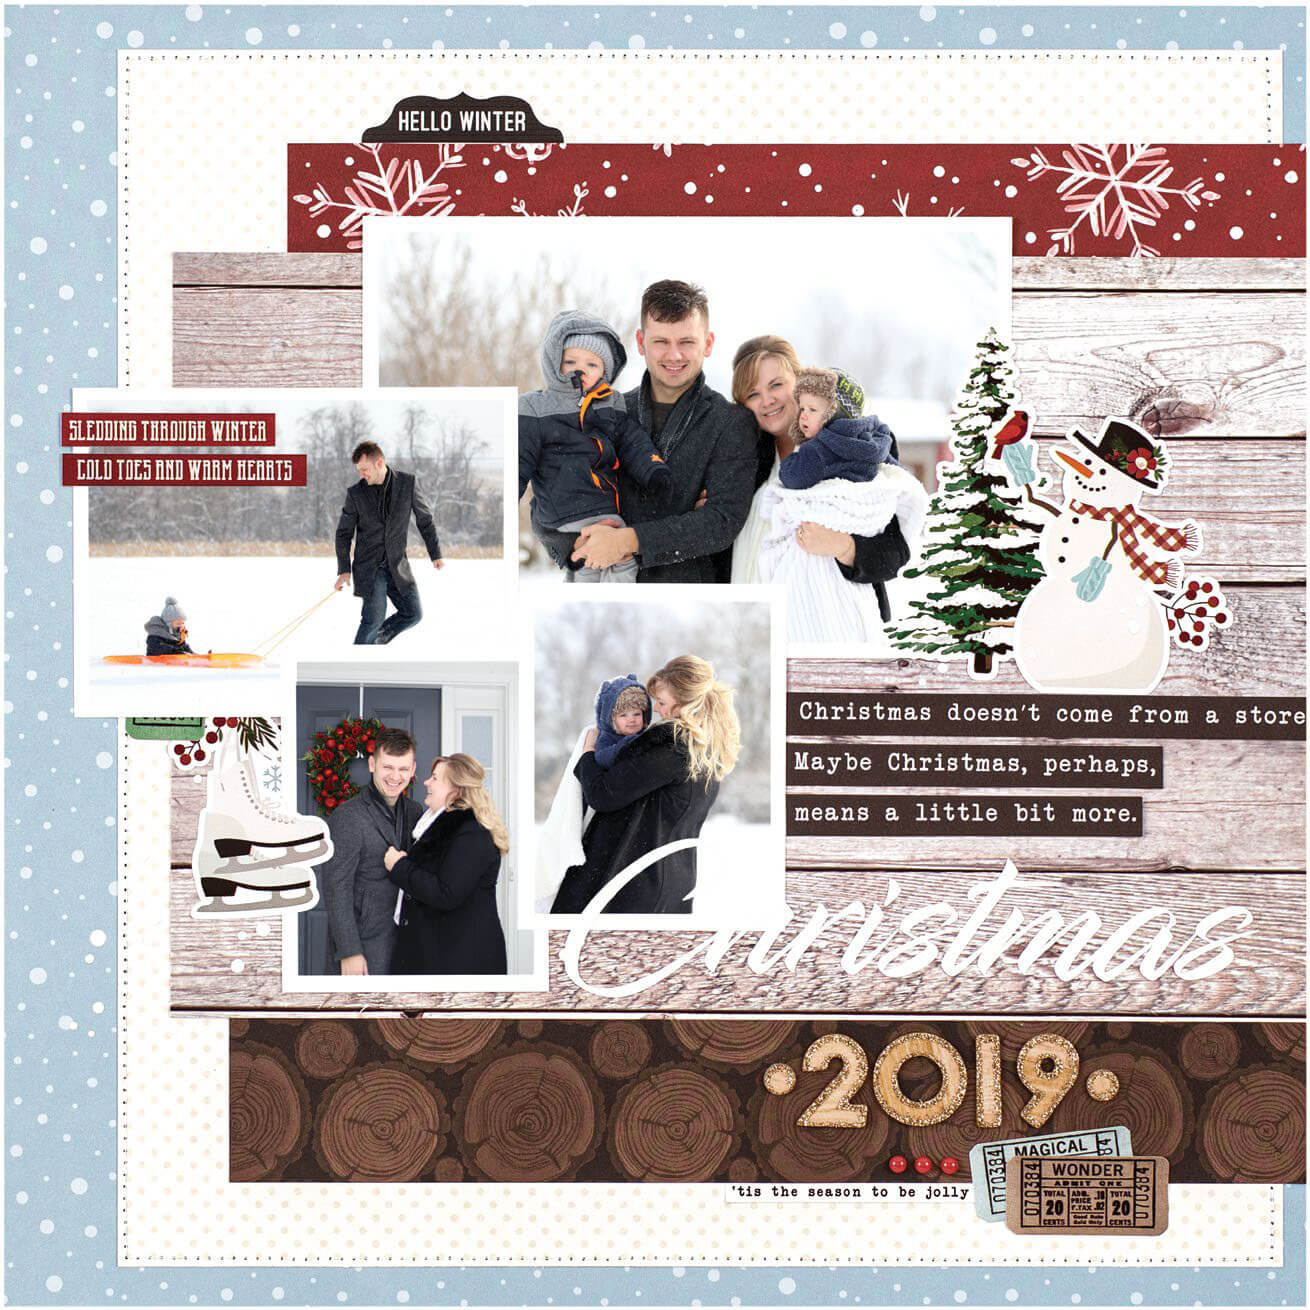 Scrapbook & Cards Today - Winter 2019 - Christmas 2019 layout by Anya Lunchenko